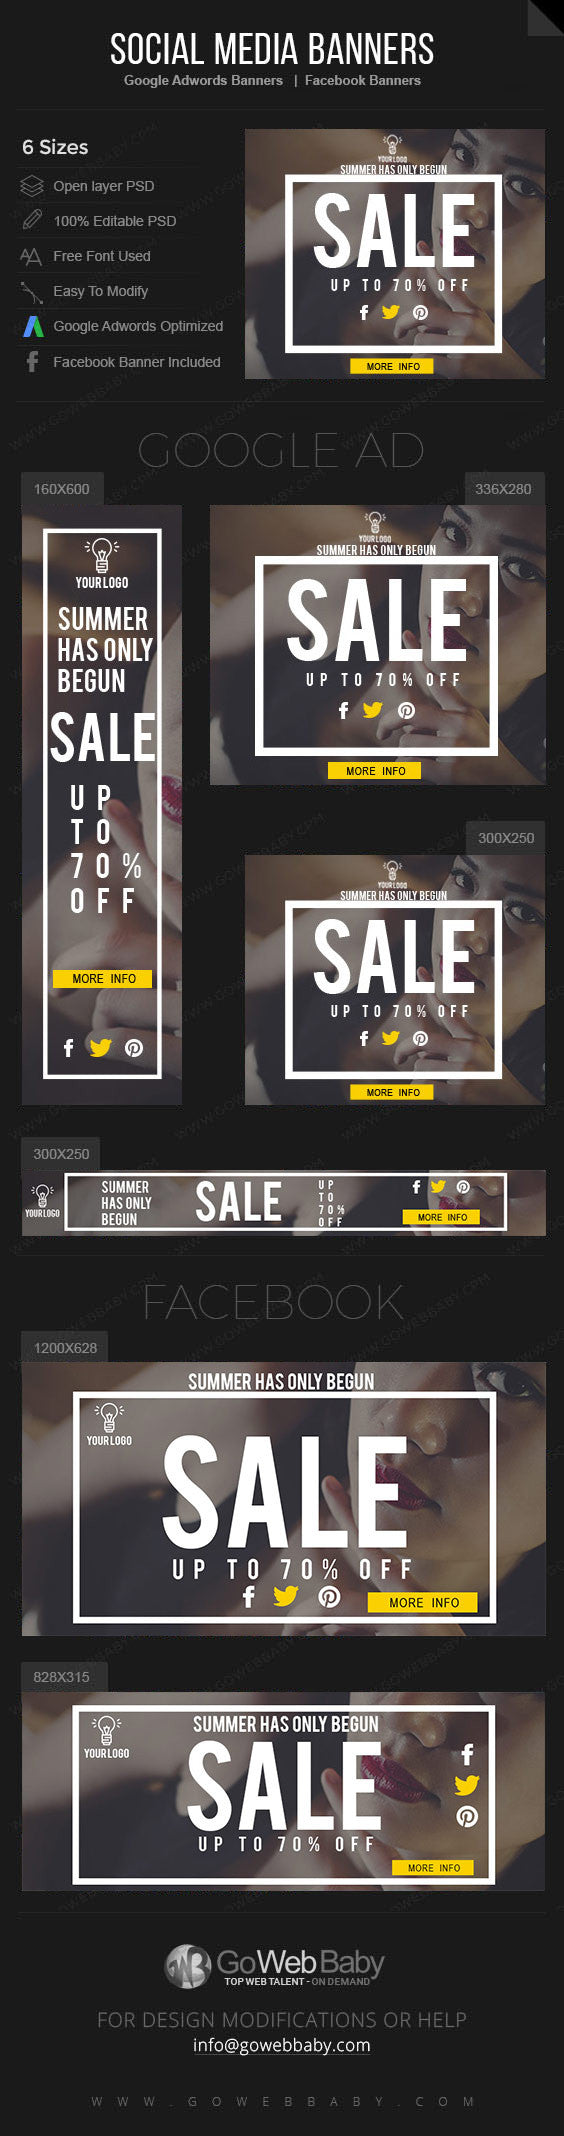 Google Adwords Display Banner with Facebook banners - Summer Sale for  Website Marketing - GoWebBaby.Com